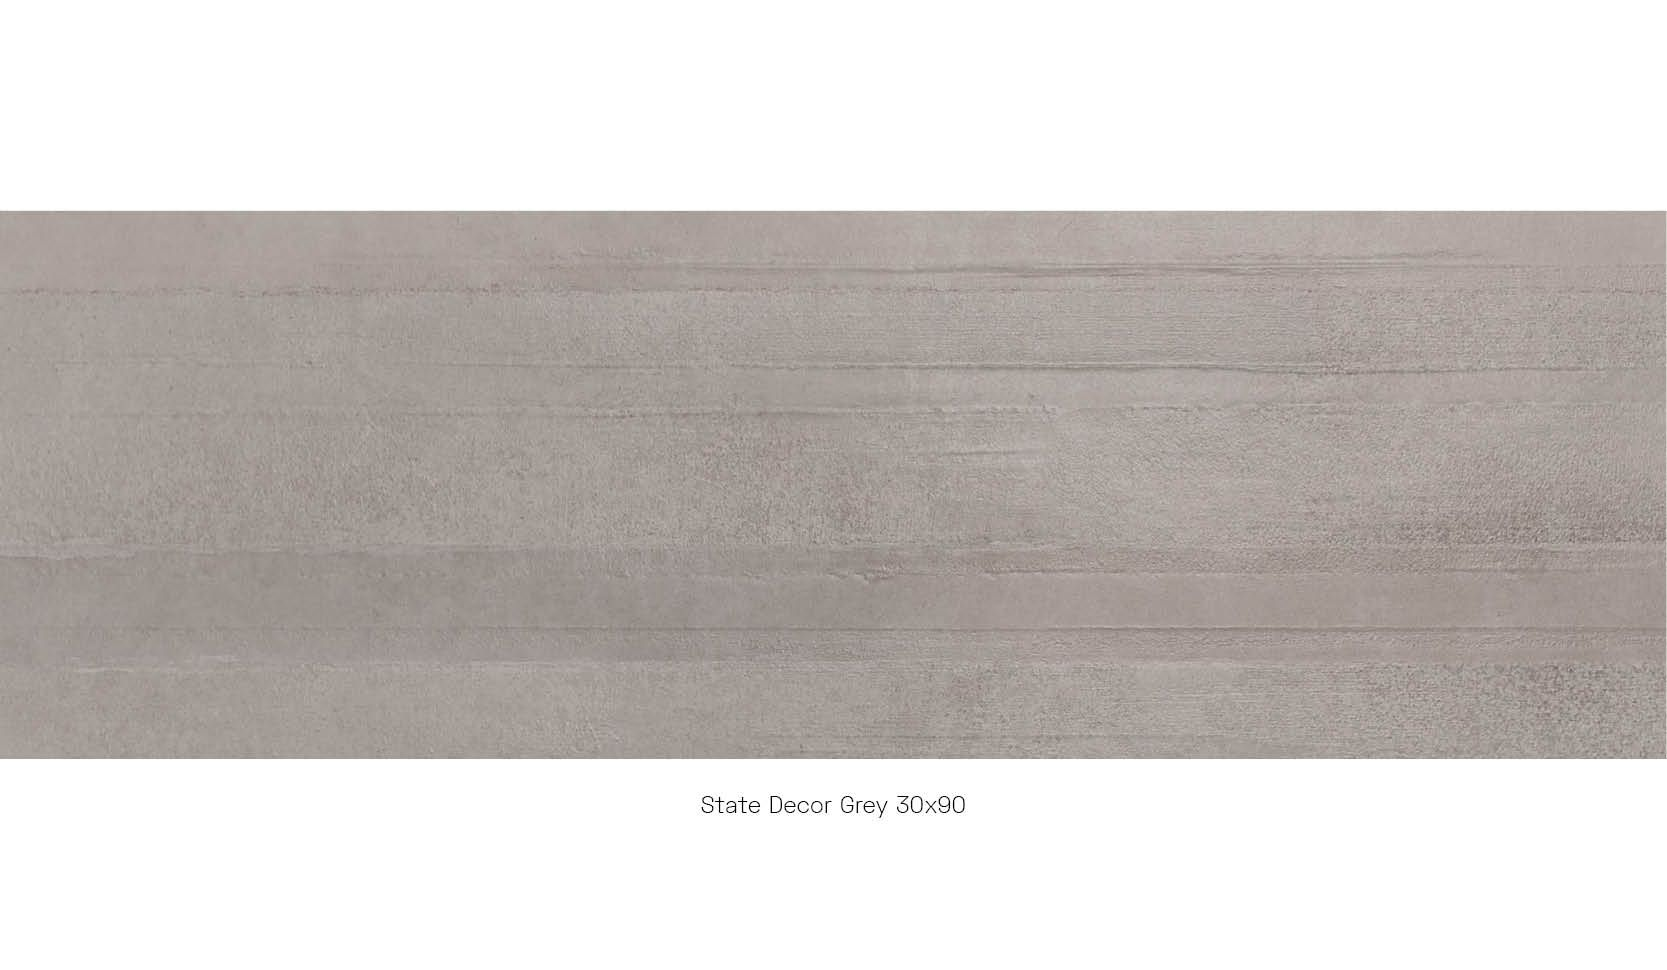 State Decor Grey 30 x 90